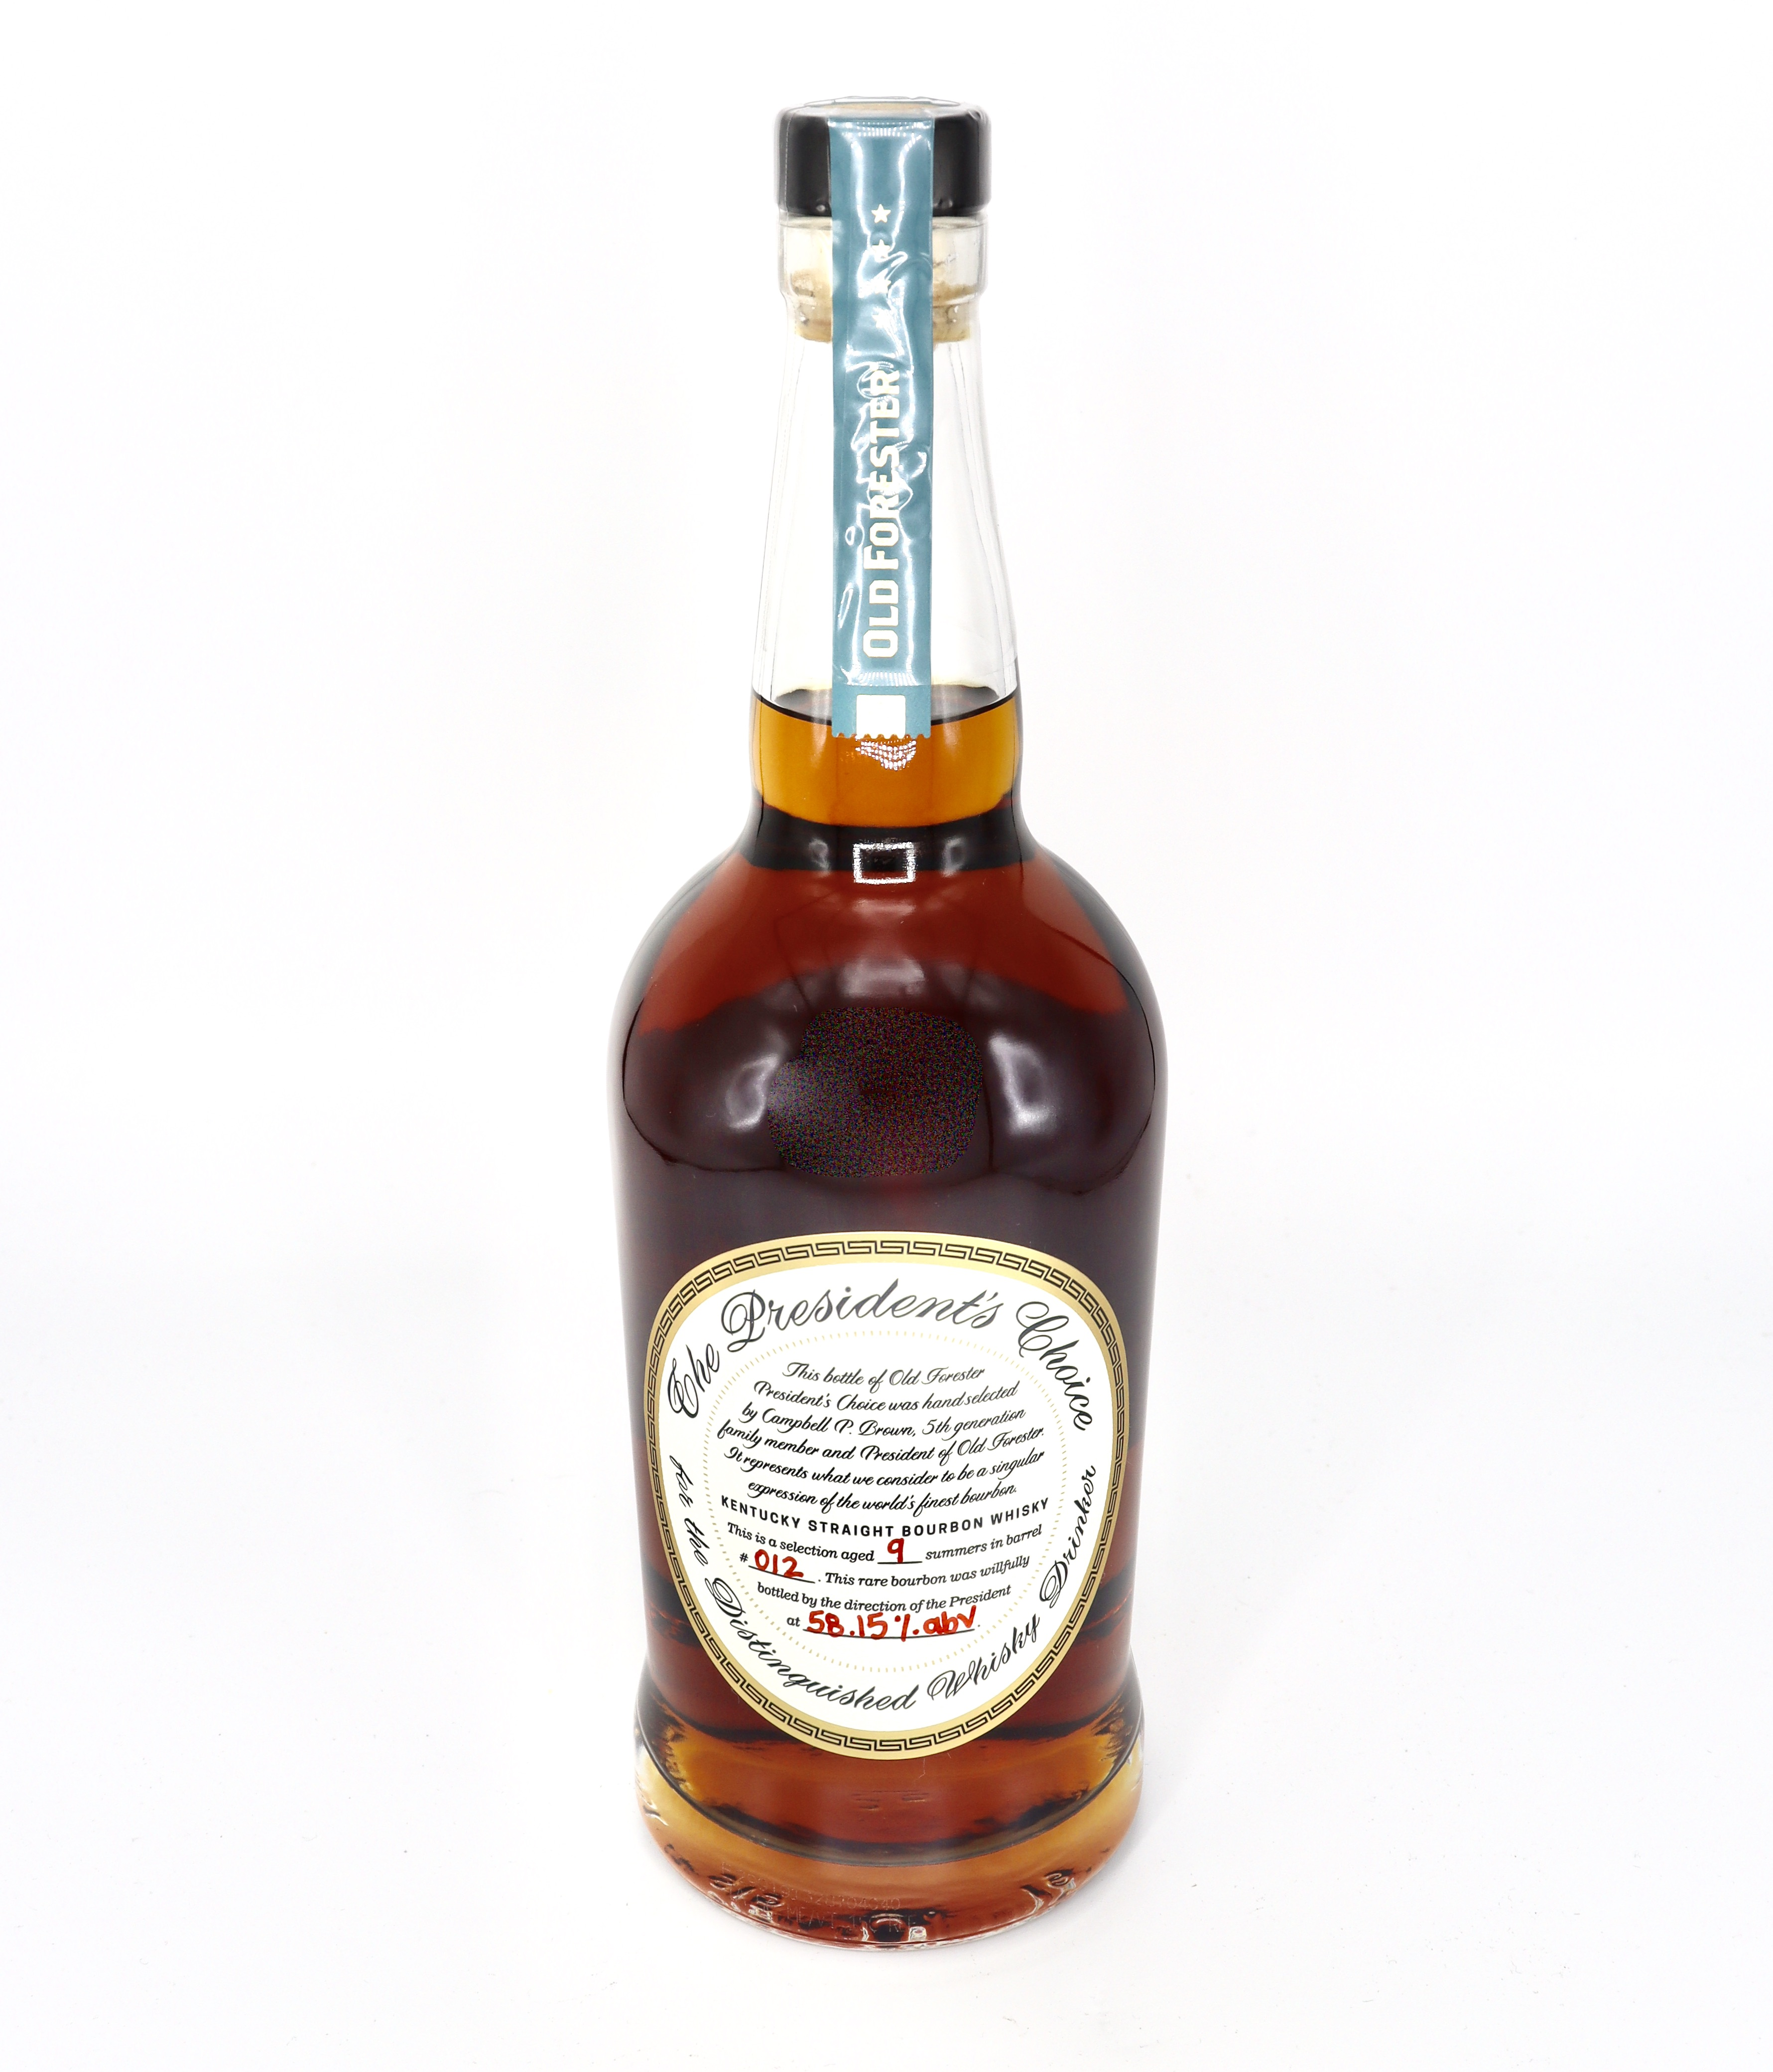 Old Forester Presidents Choice aged 9 summers in Barrel No 012 116.3 proof